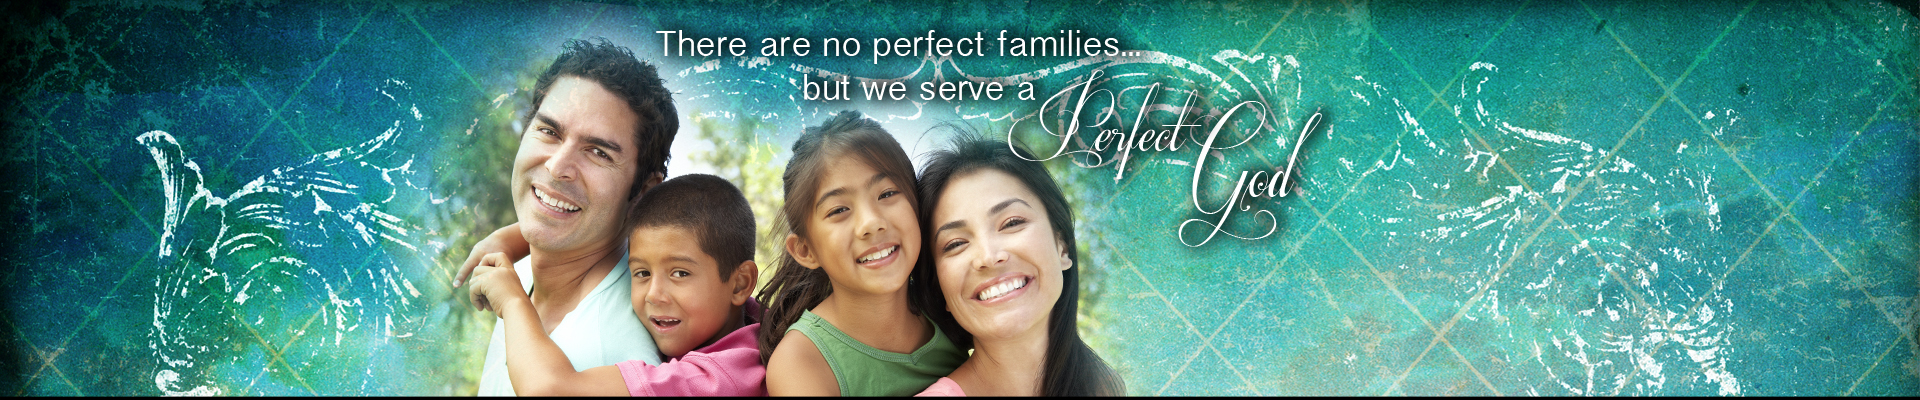 There are no Perfect Families, but we Serve a Perfect God!